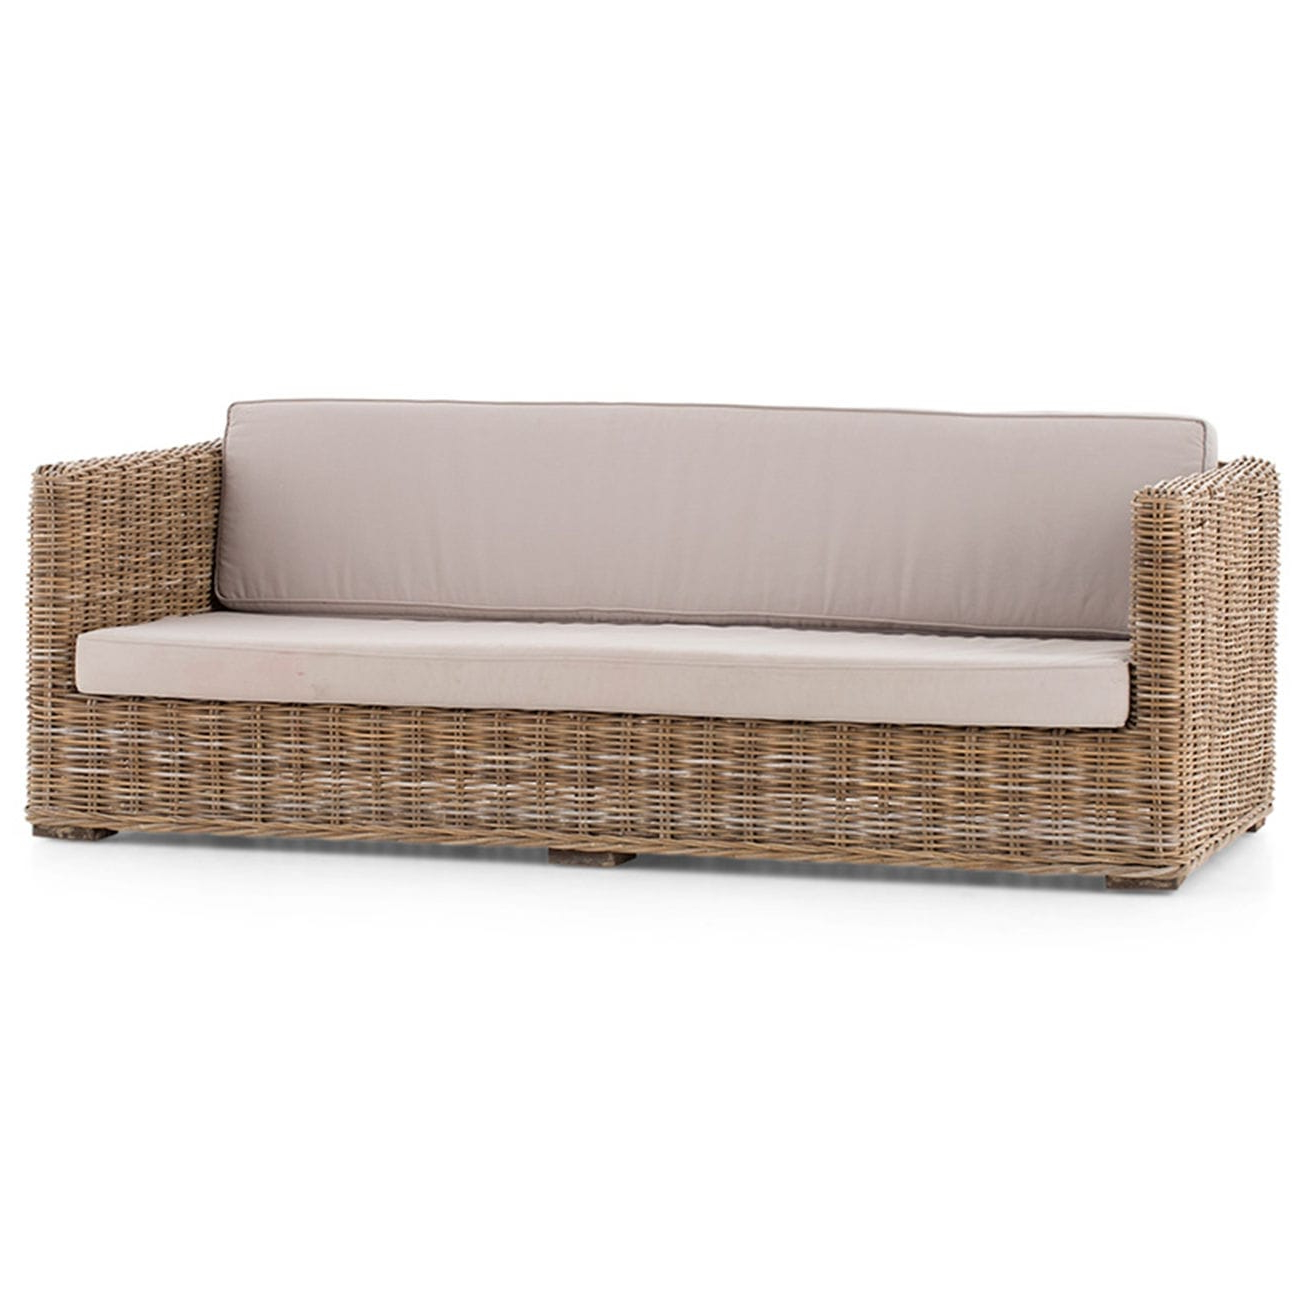 Sofa Mimbre X8d1 Contemporary sofa Fabric Rattan Wicker